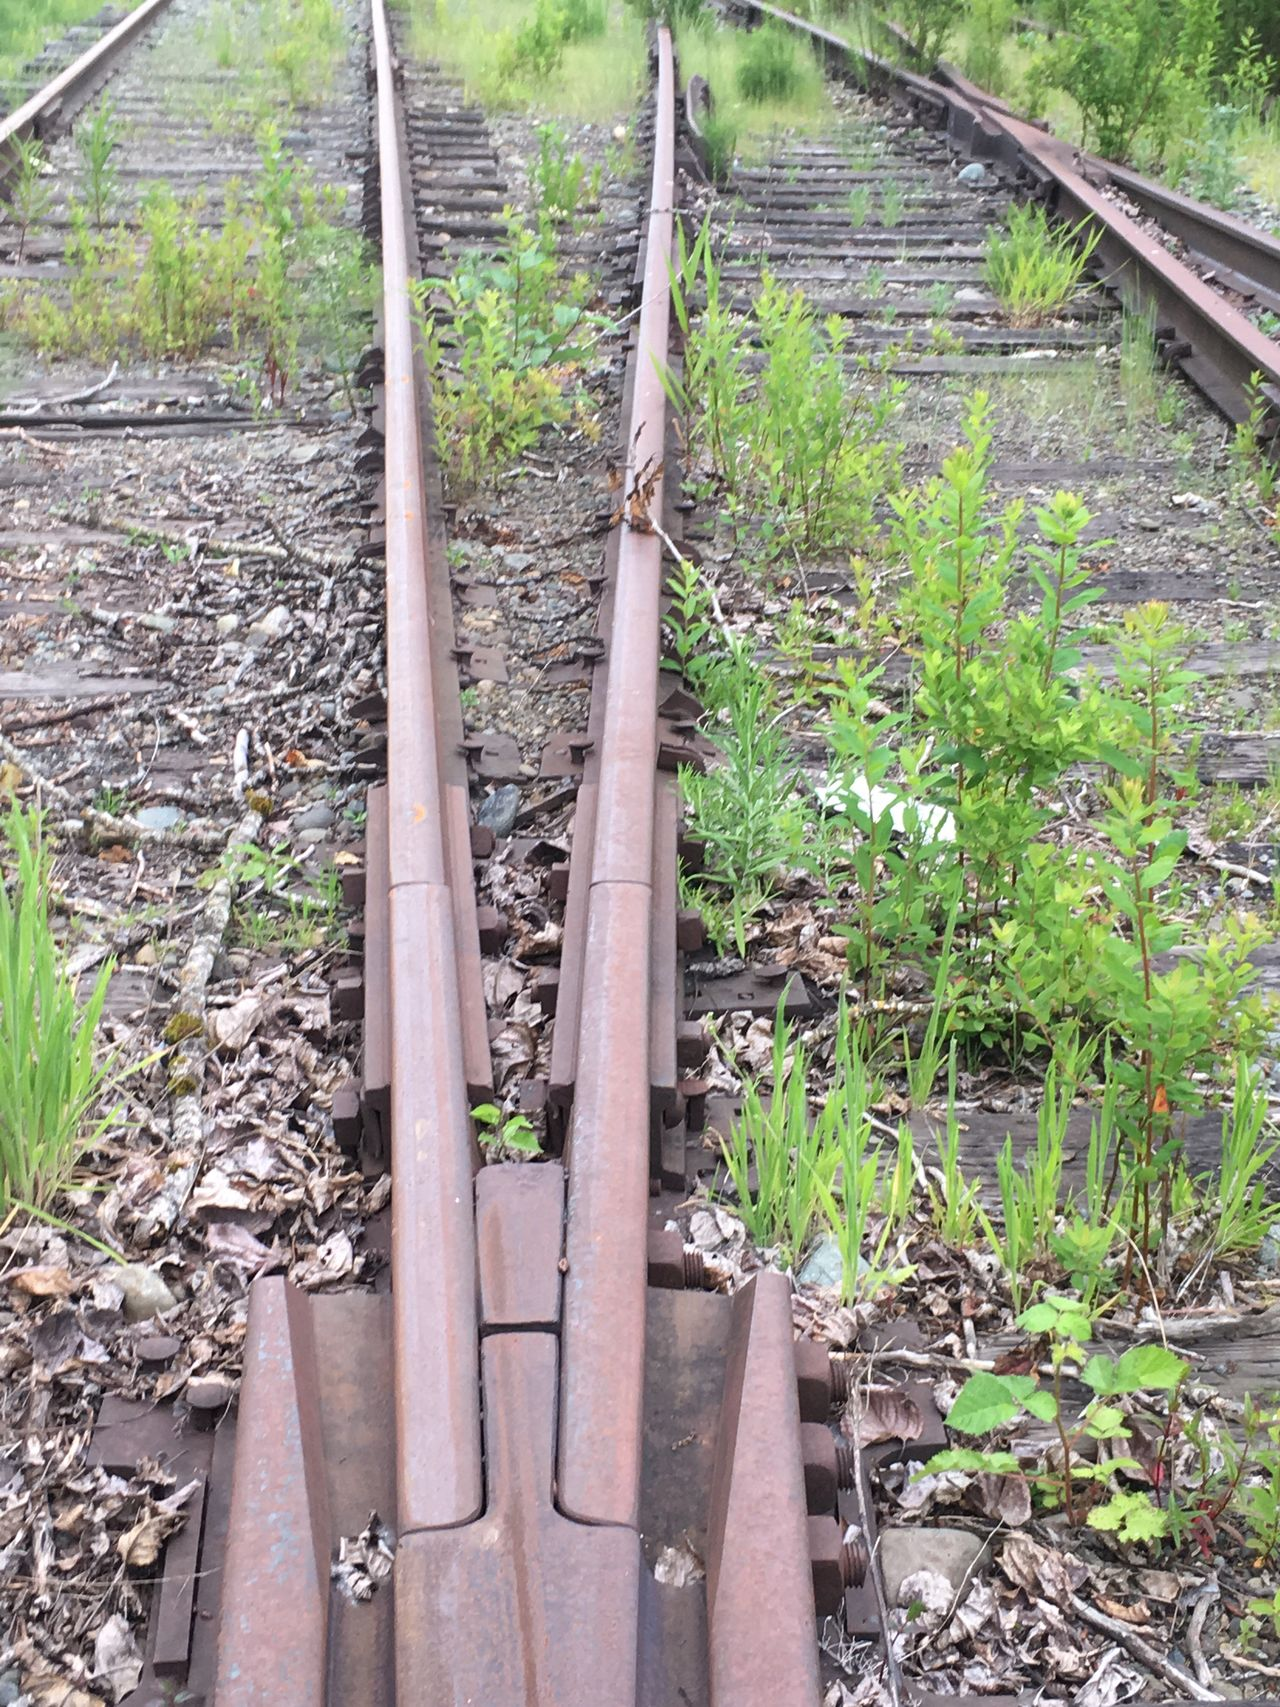 Train Tracks Day Outdoors Growth No People Nature Close-up Rust Iron Abandoned